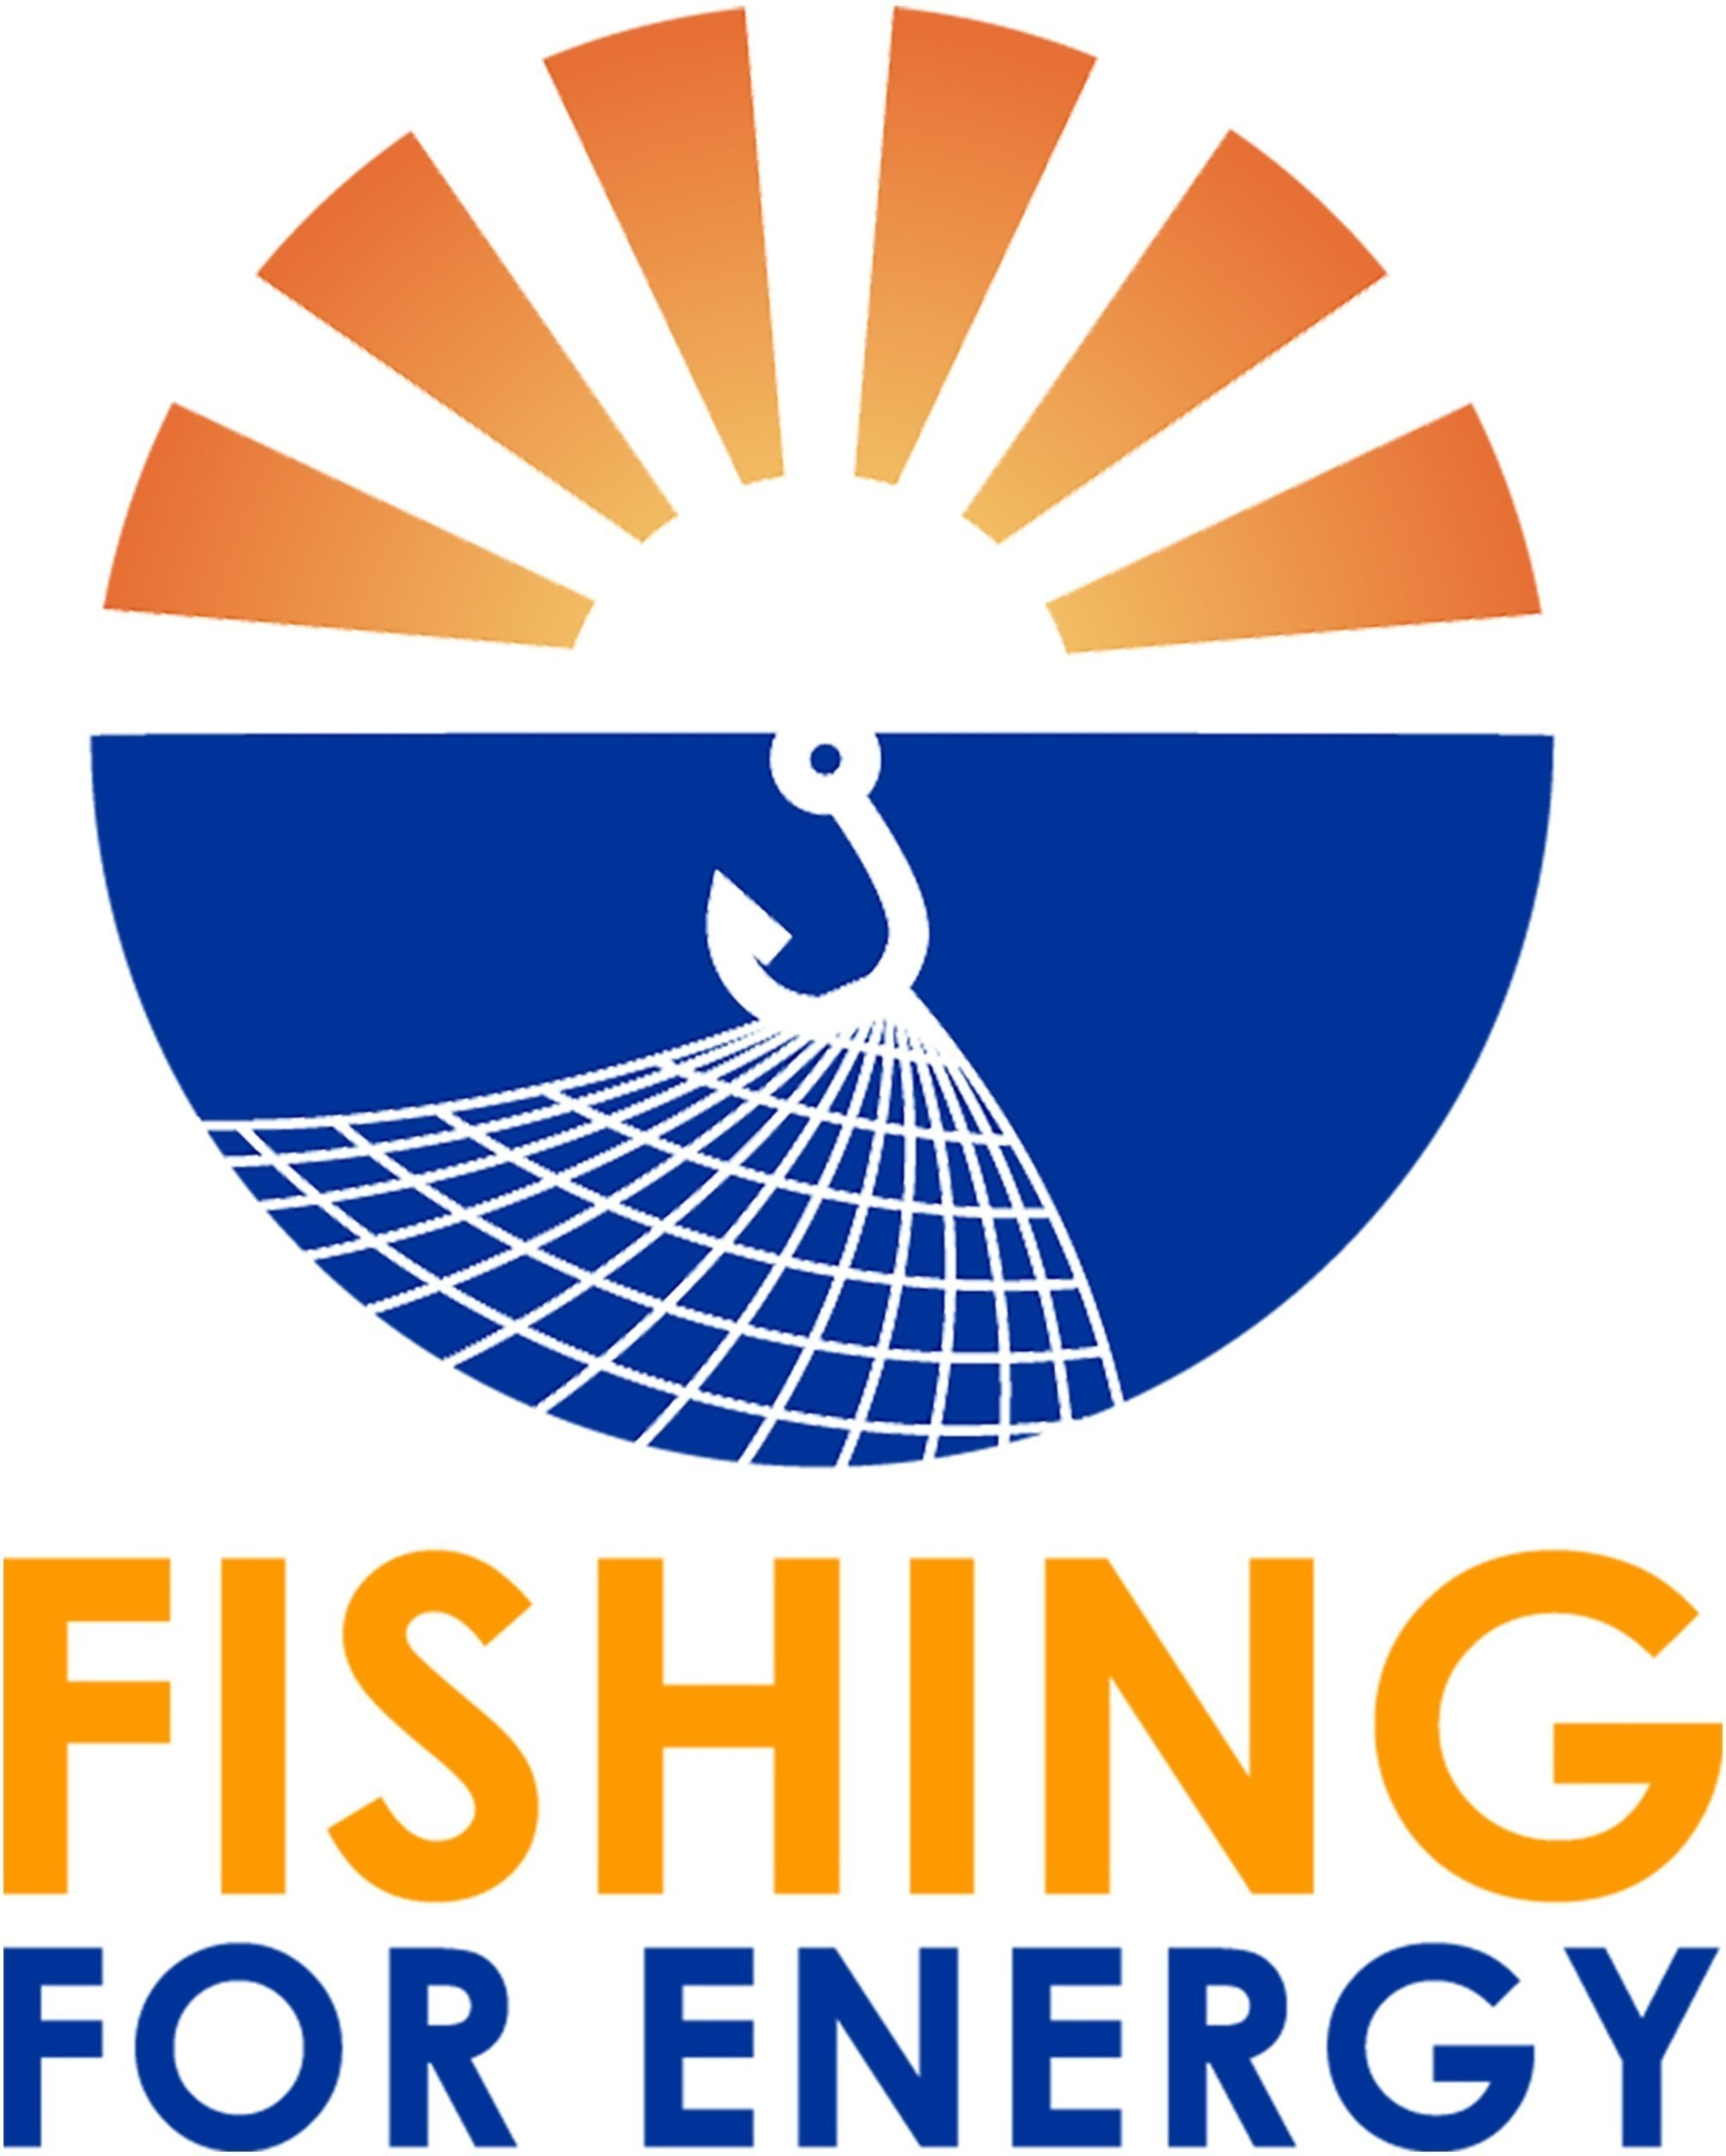 Old Fishing Gear and Marine Debris Processed to Produce Energy at Pinellas County Energy-from-Waste Facility